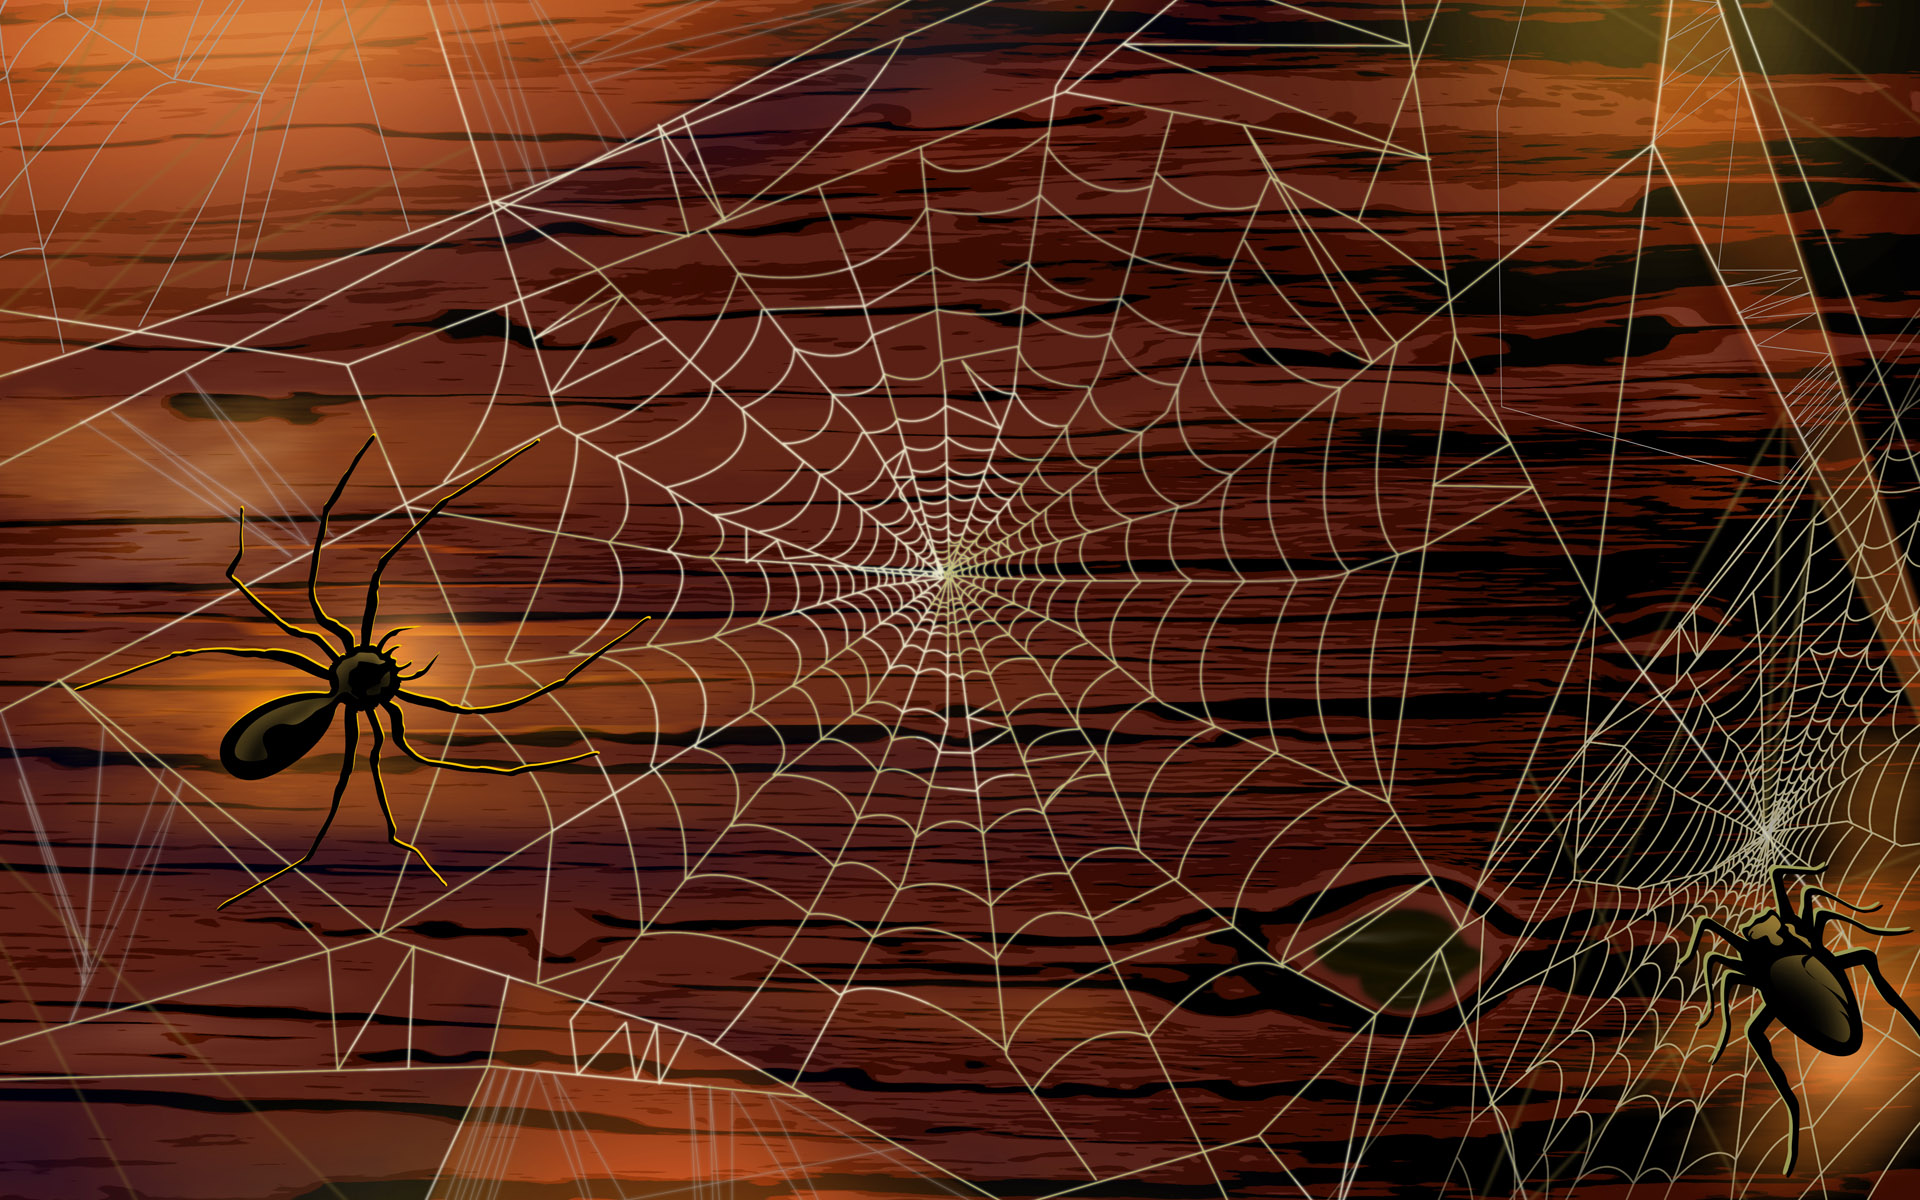 Scary Halloween 2012 Spiders HD Wallpaper 2 1920x1200